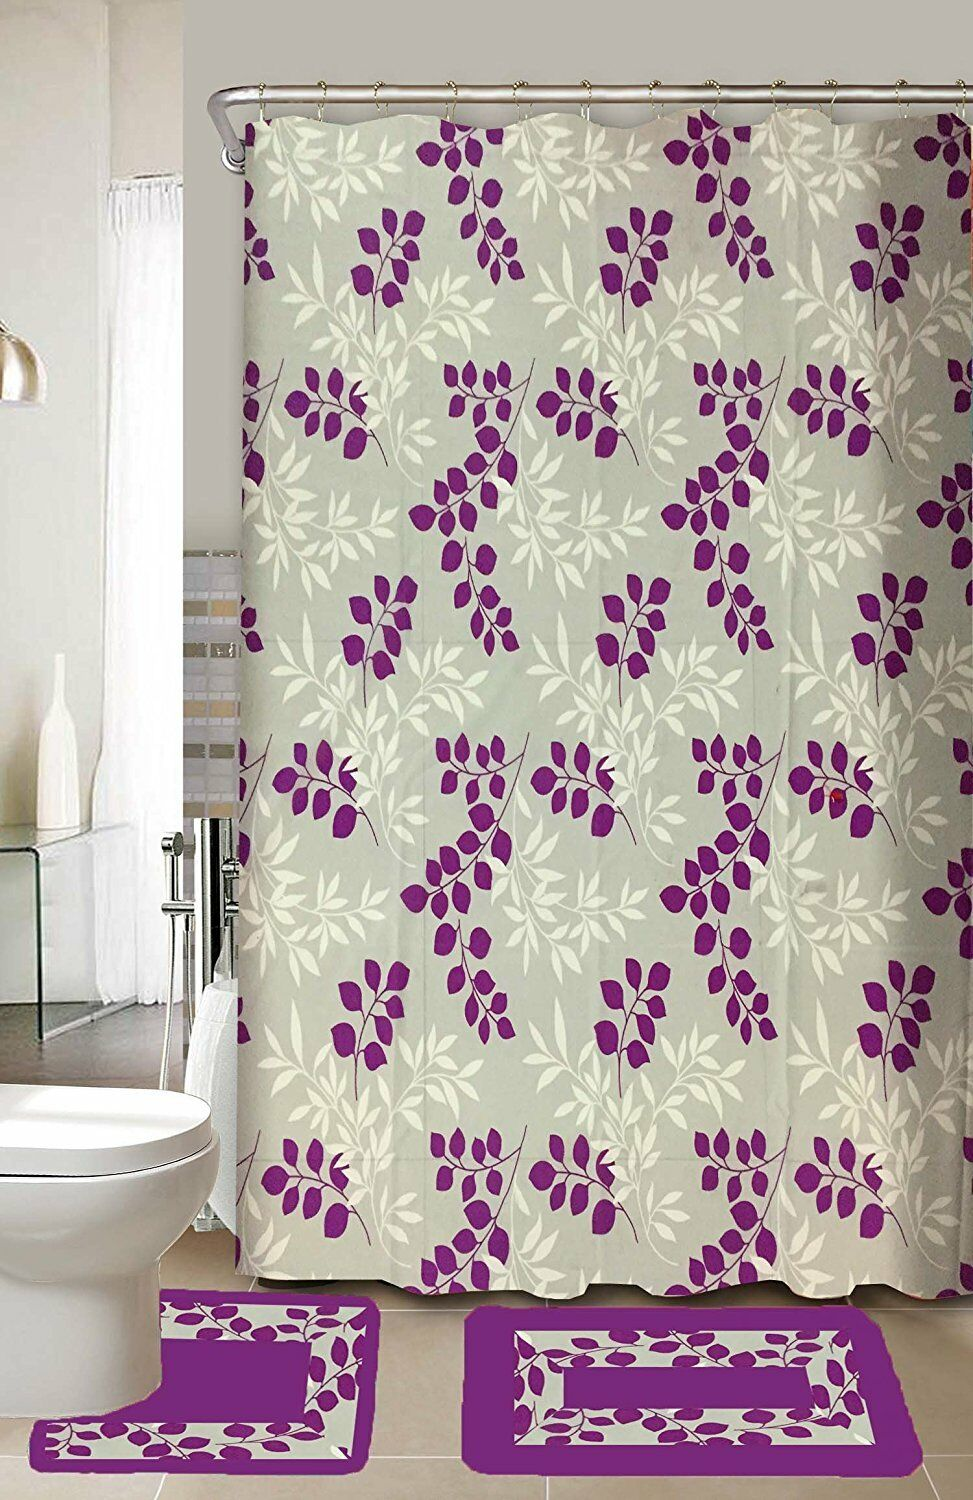 Maria 15-Piece Bathroom Accessory Set Bath Mats Shower Curtain - Purple leaf